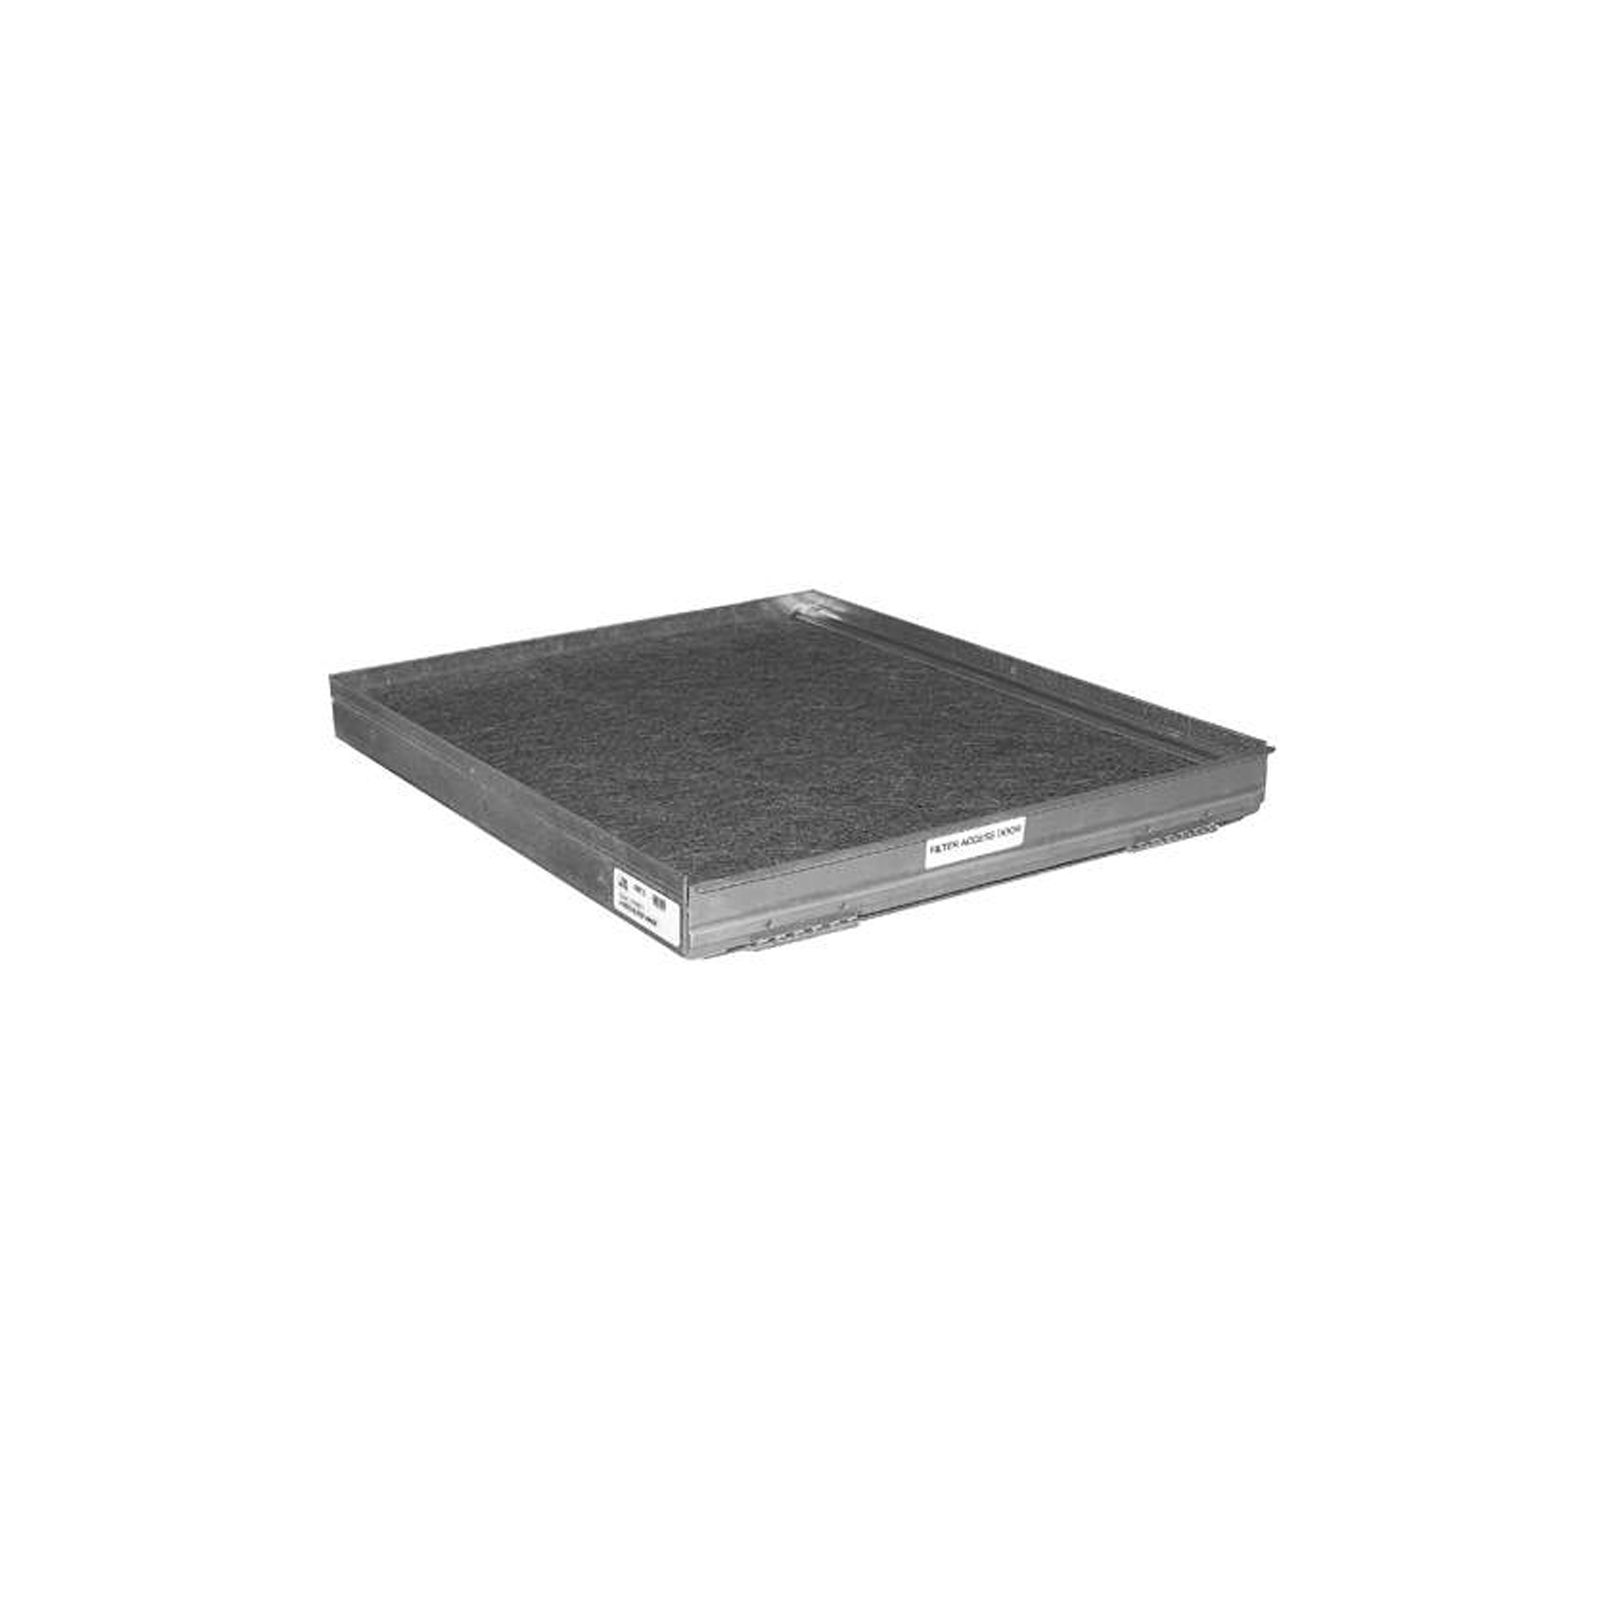 "Miami Tech FFRD23TAS - Fixed Filter Rack with Door For Trane/American Standard, 23"" W"